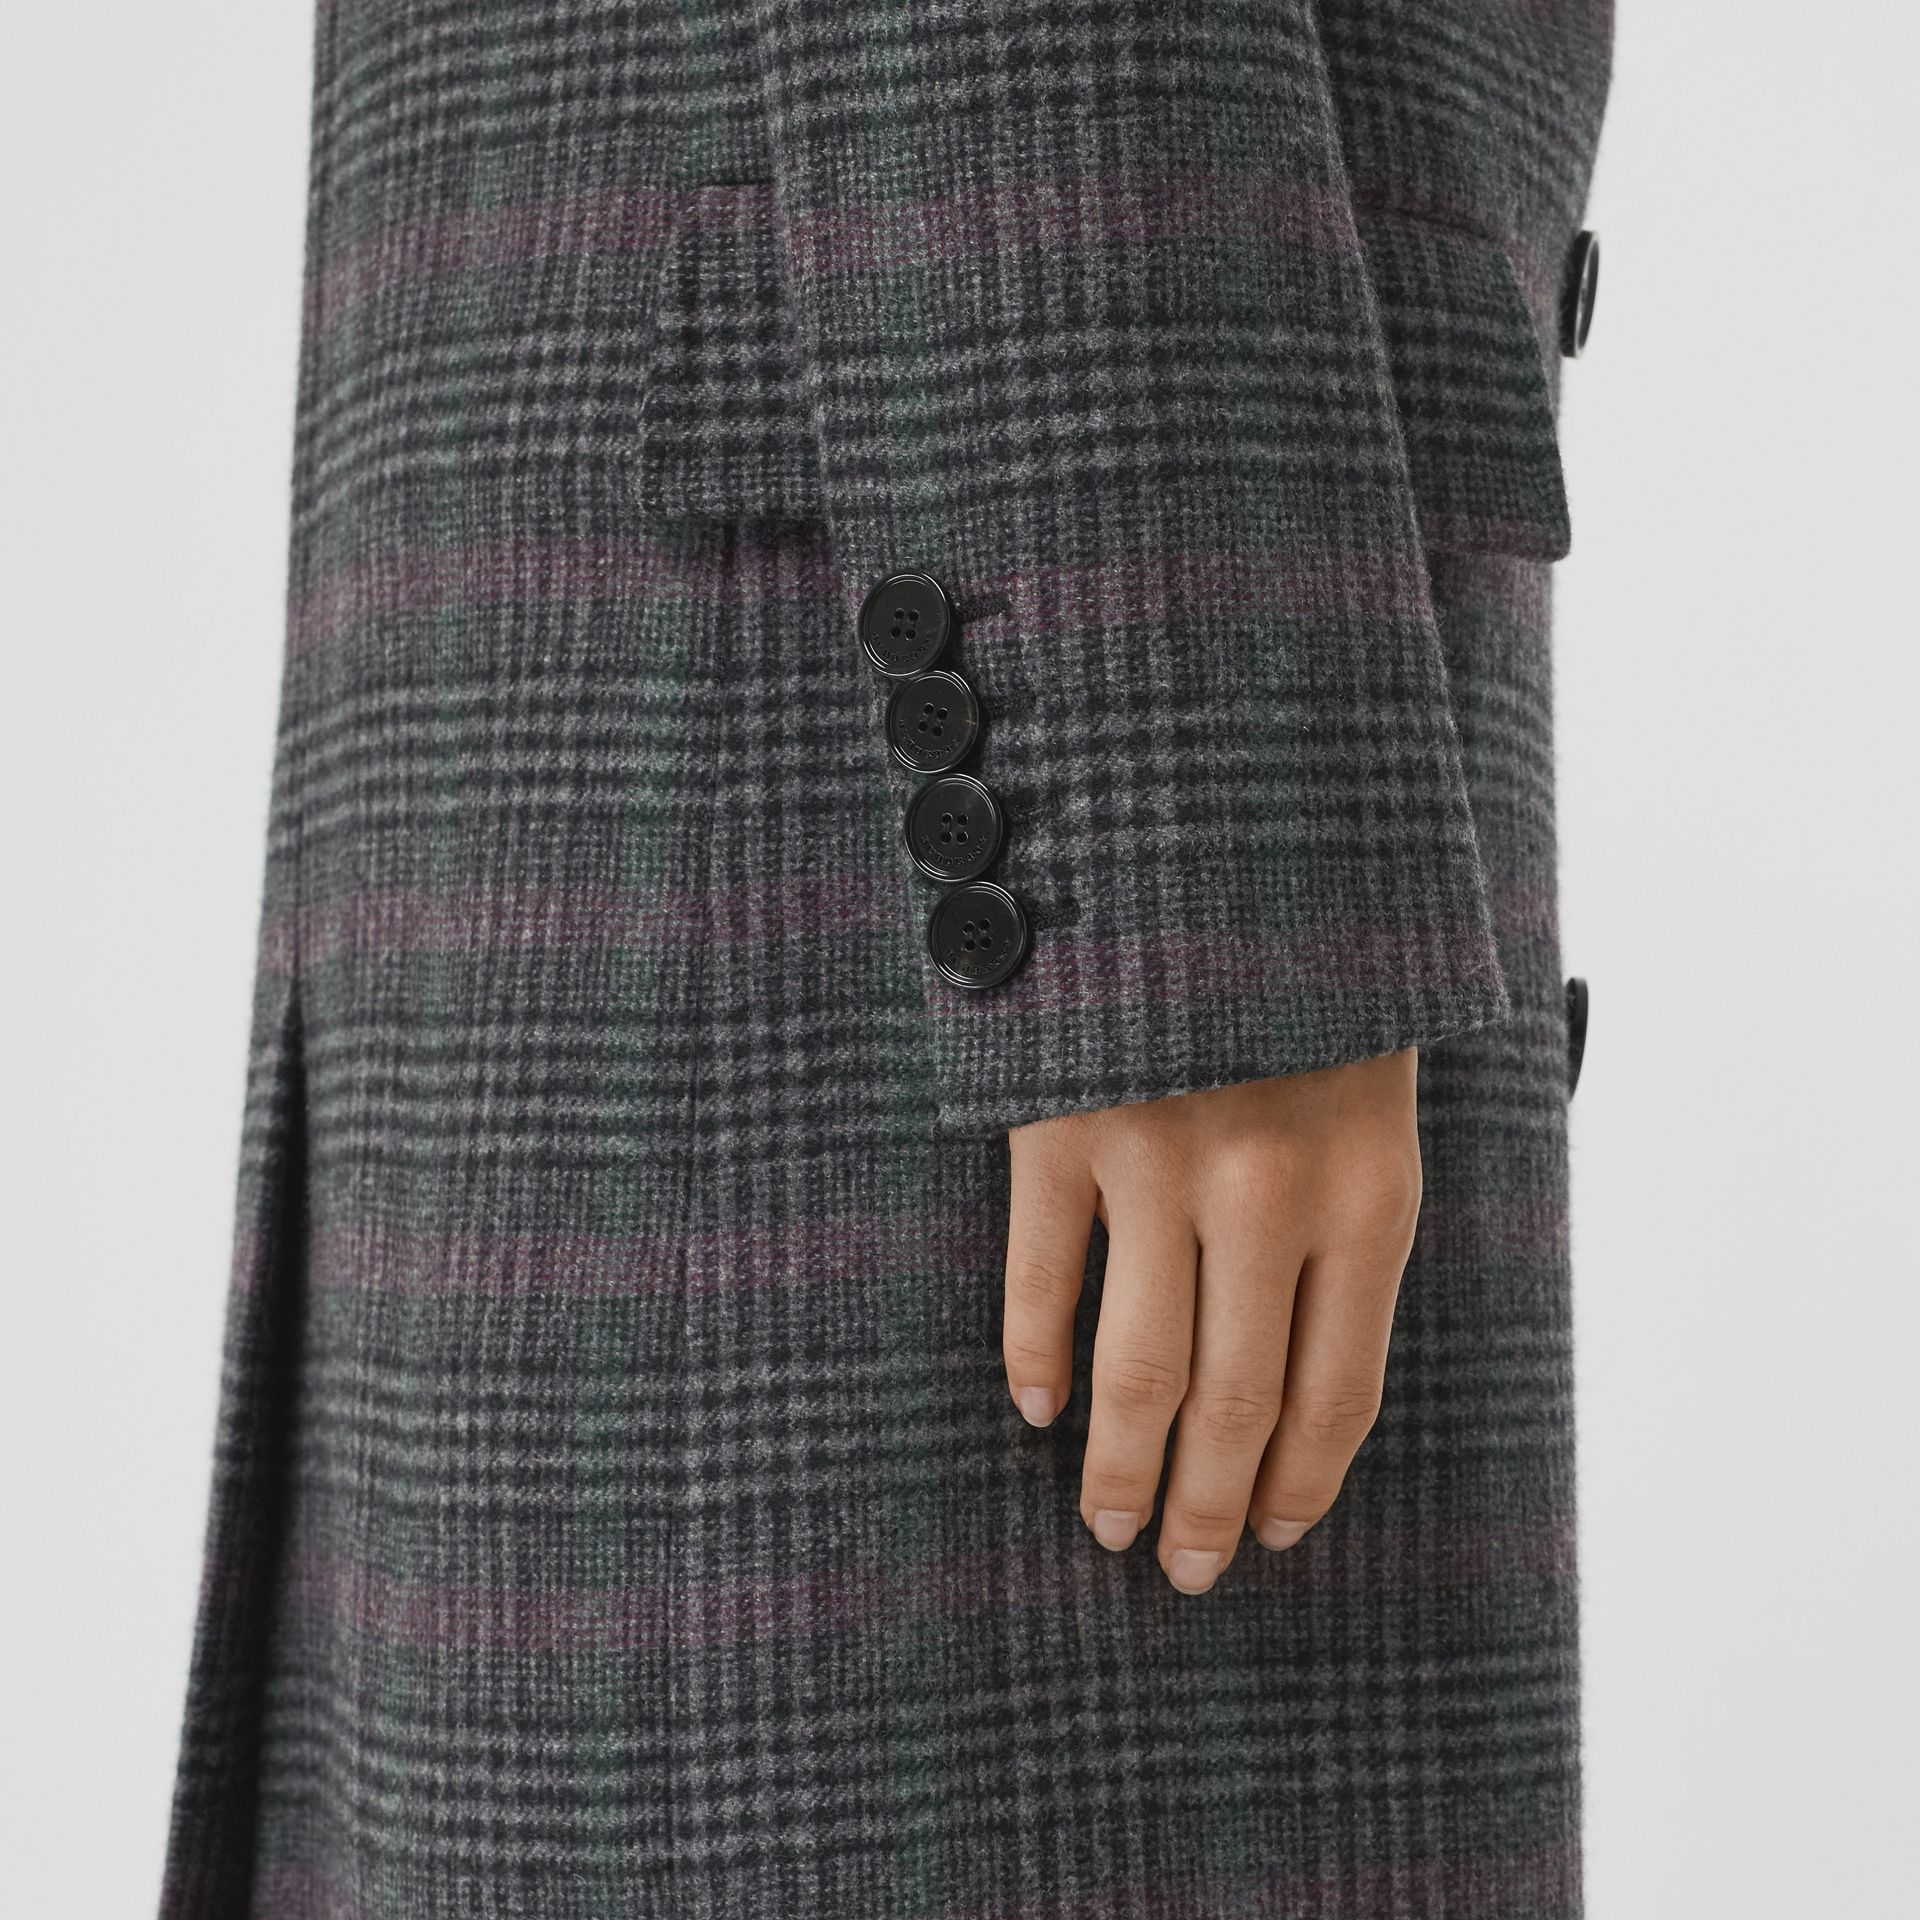 Prince of Wales Check Wool Tailored Coat in Charcoal - Women | Burberry Canada - gallery image 4